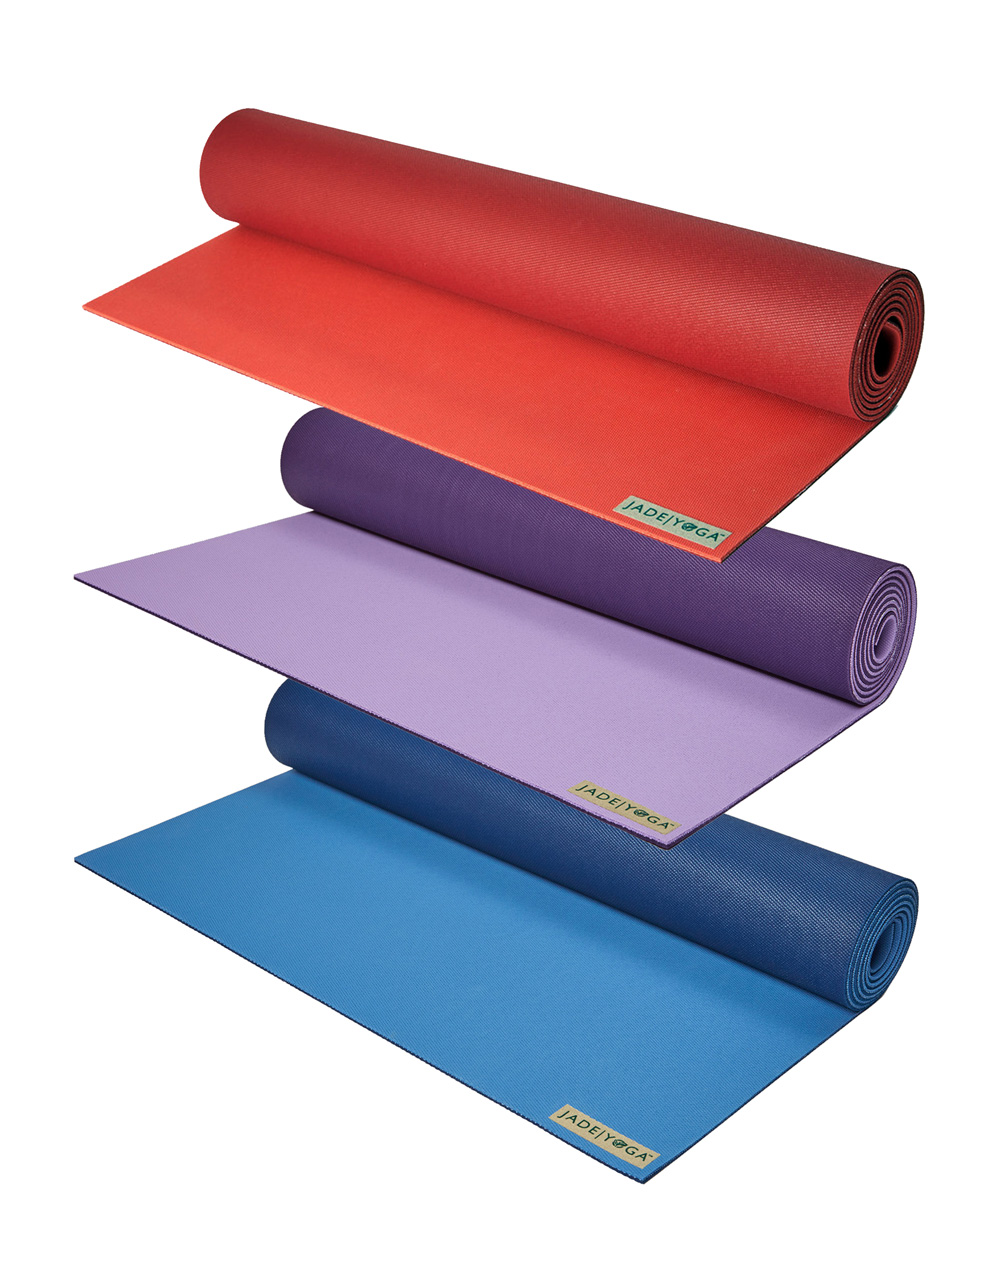 New Two Tone Yoga Mats Jadeyoga Canada